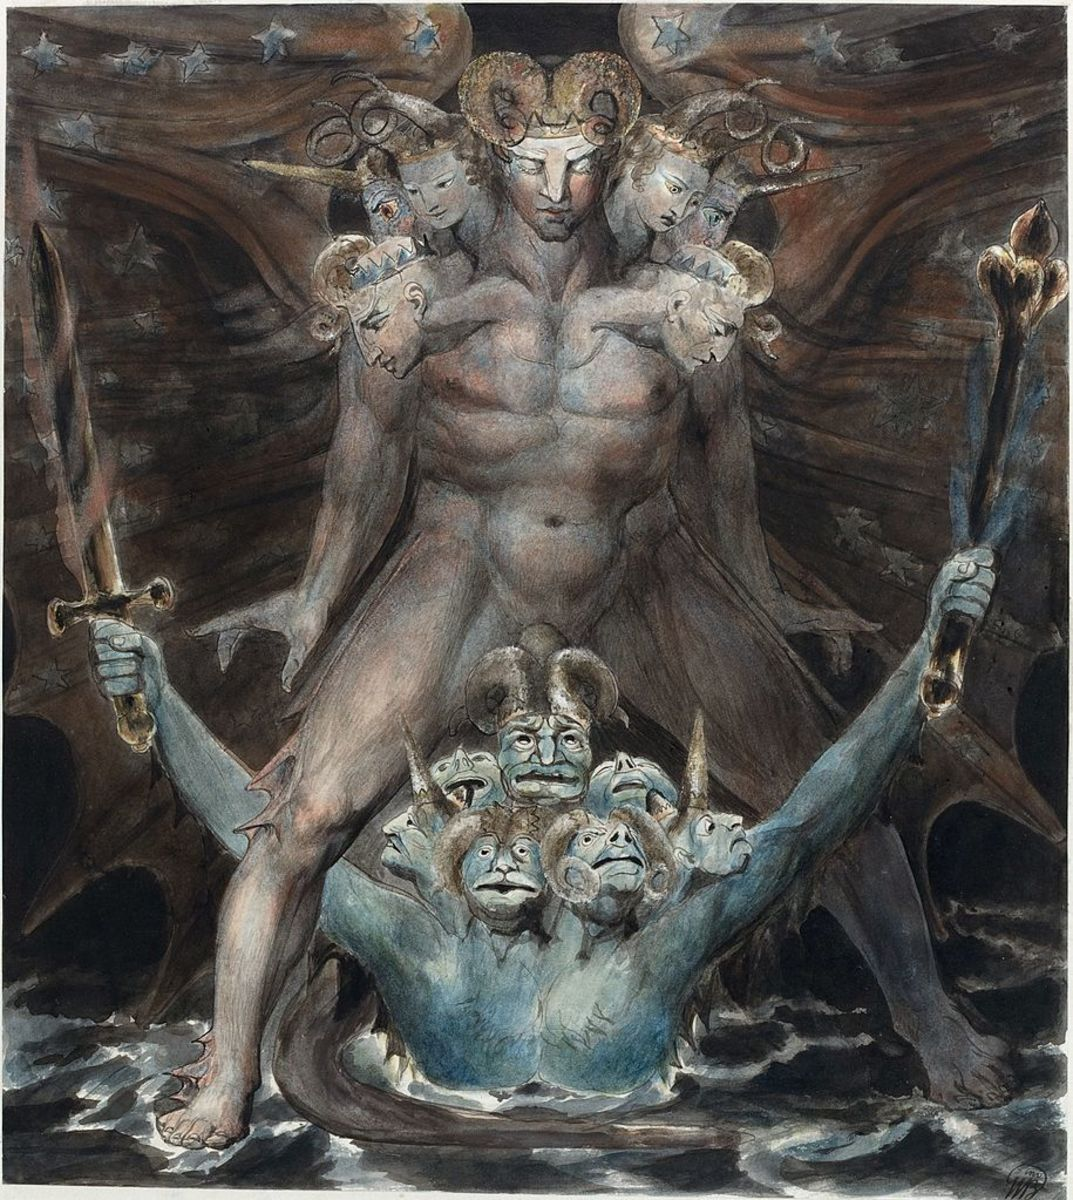 The Great Red Dragon and the Beast from the Sea by English painter, William Blake.